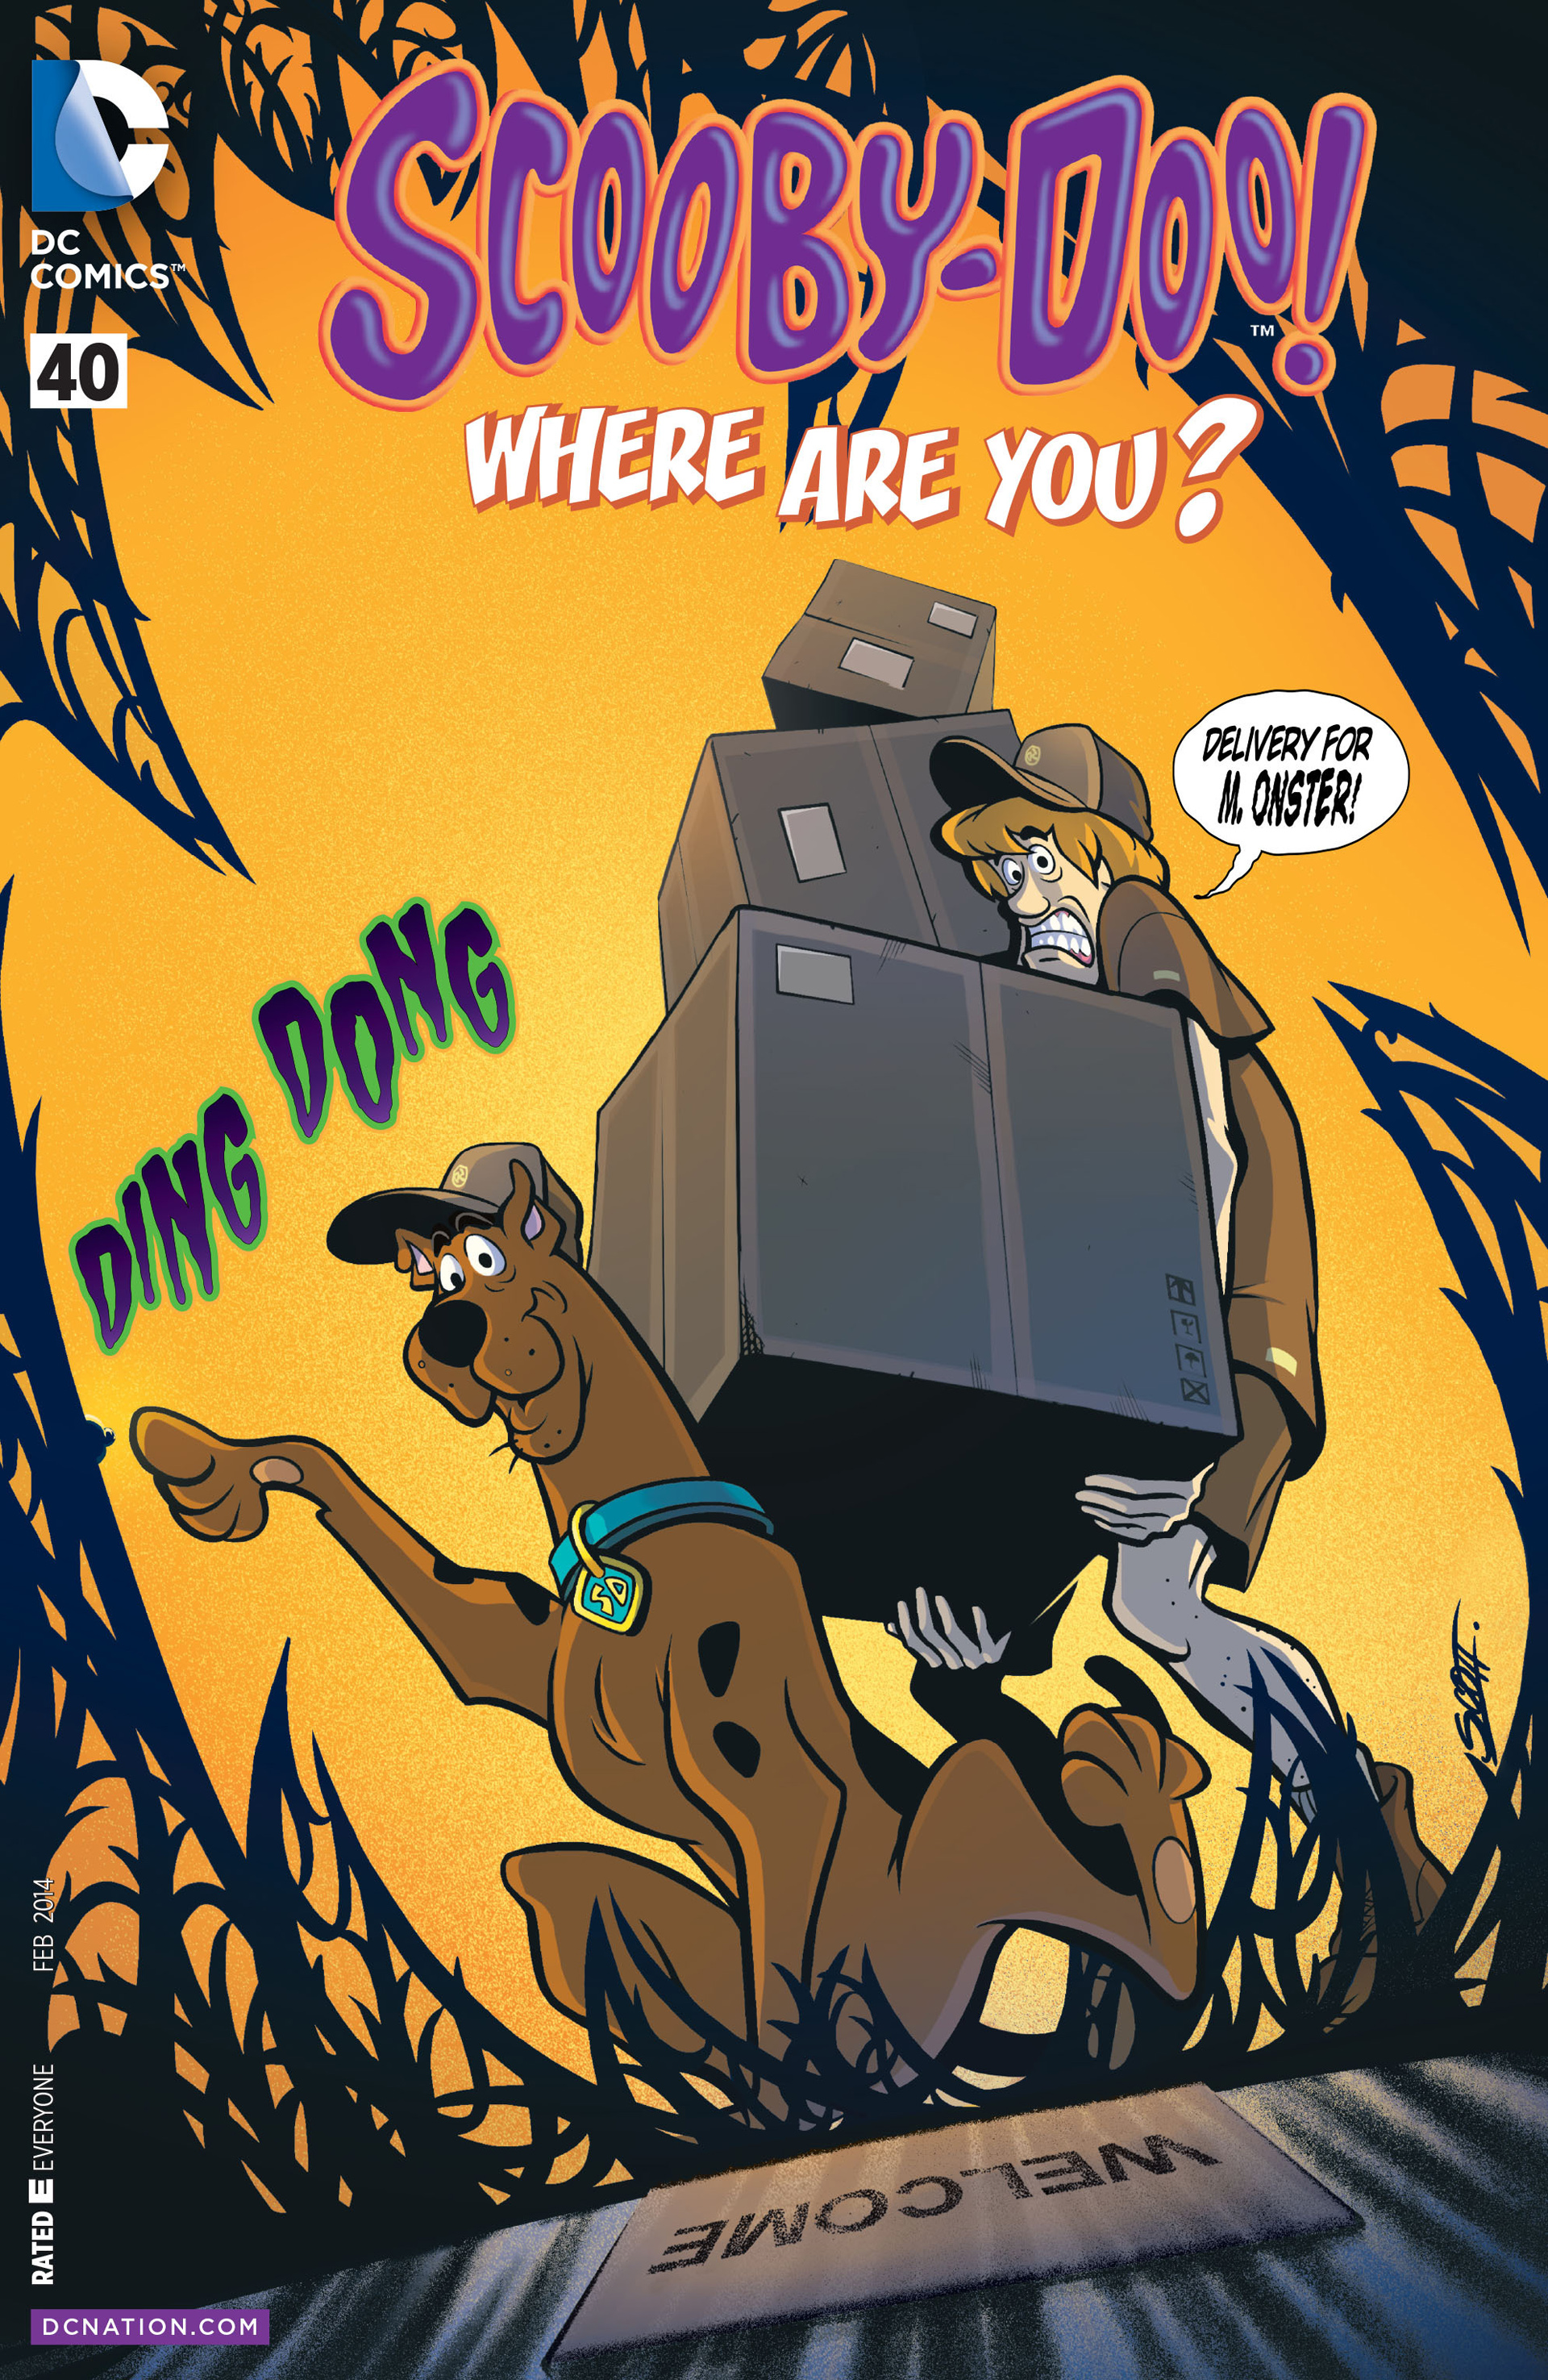 Read online Scooby-Doo: Where Are You? comic -  Issue #40 - 1